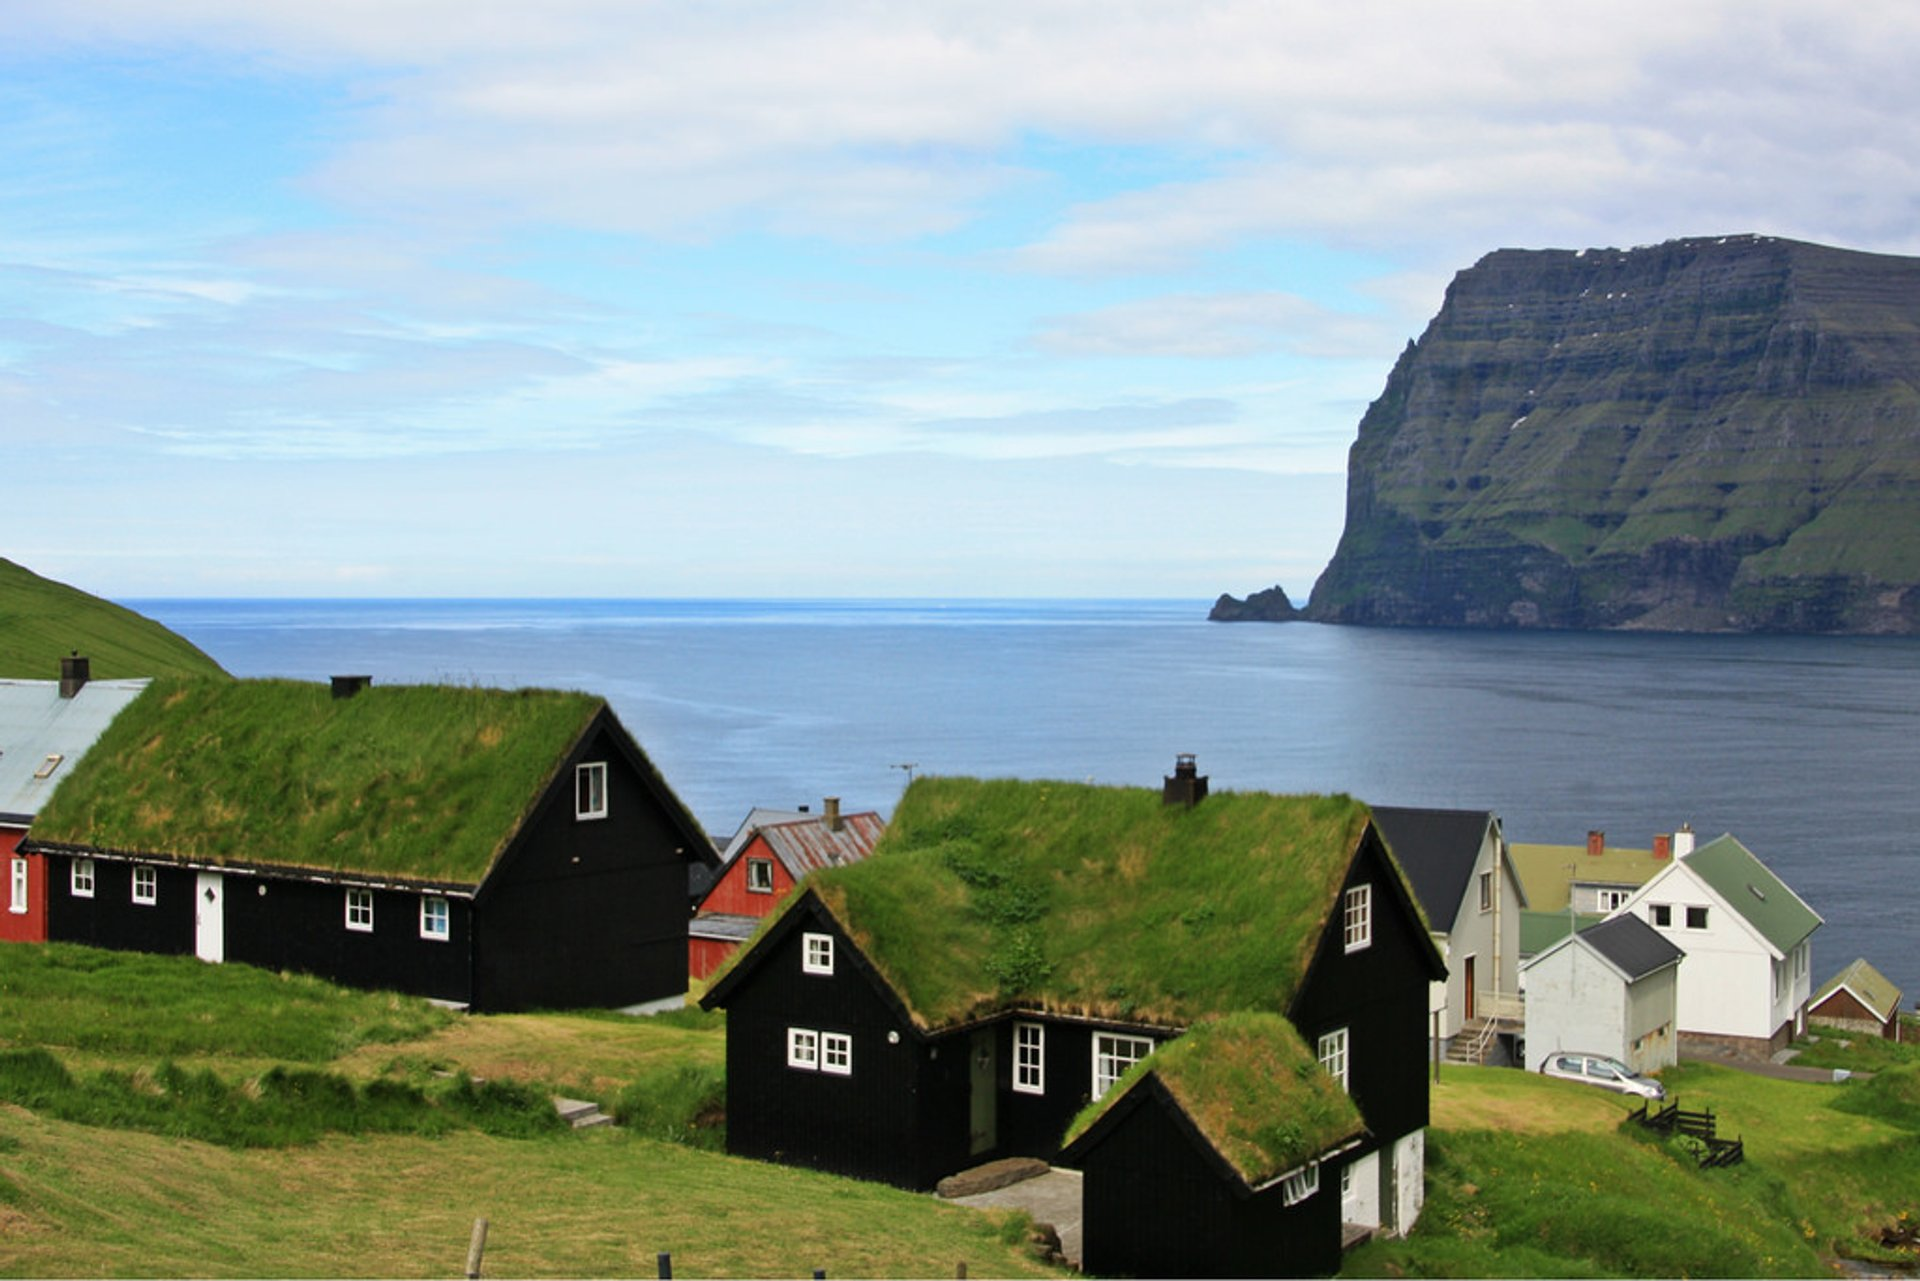 Summer in Faroe Islands 2020 - Best Time